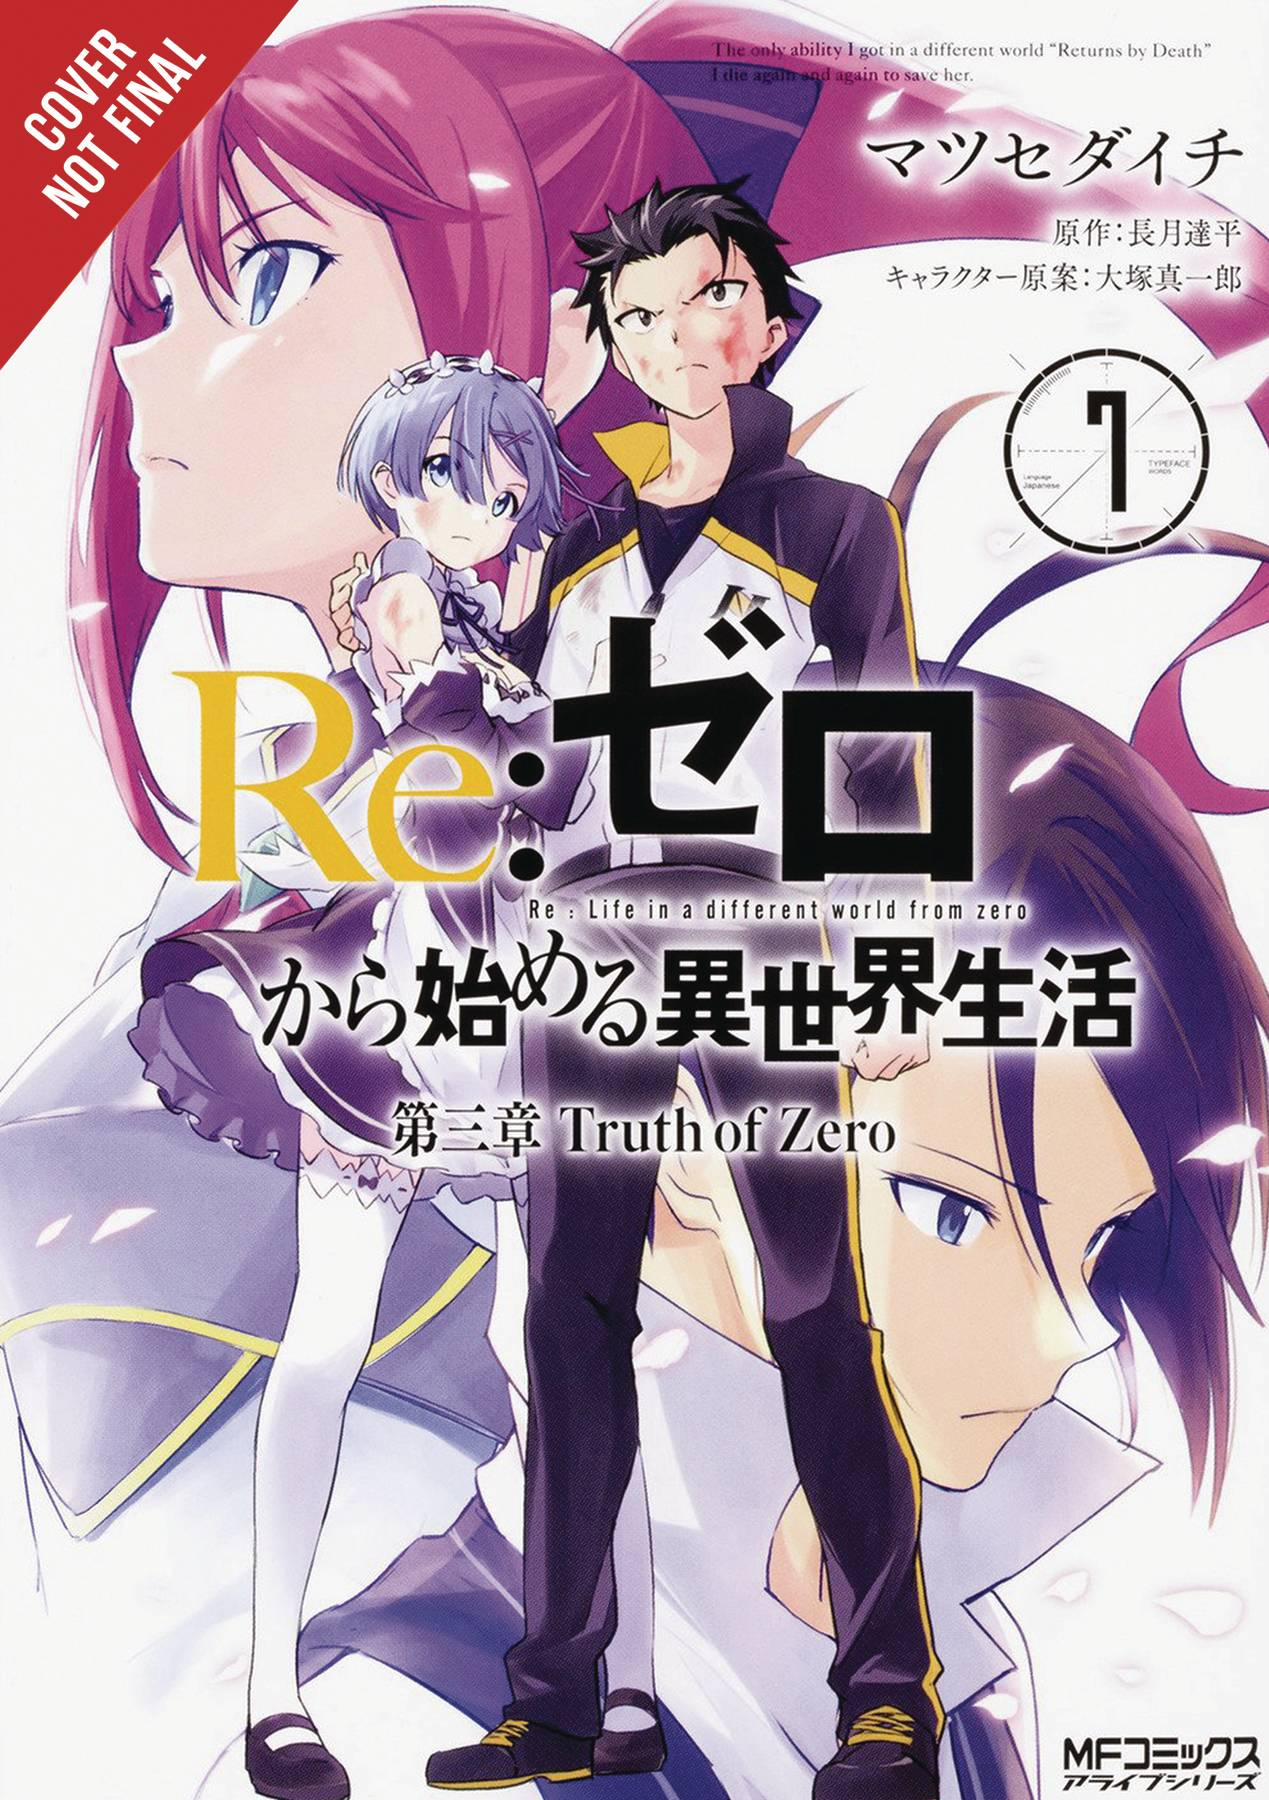 RE ZERO SLIAW CHAPTER 3 TRUTH ZERO GN VOL 07